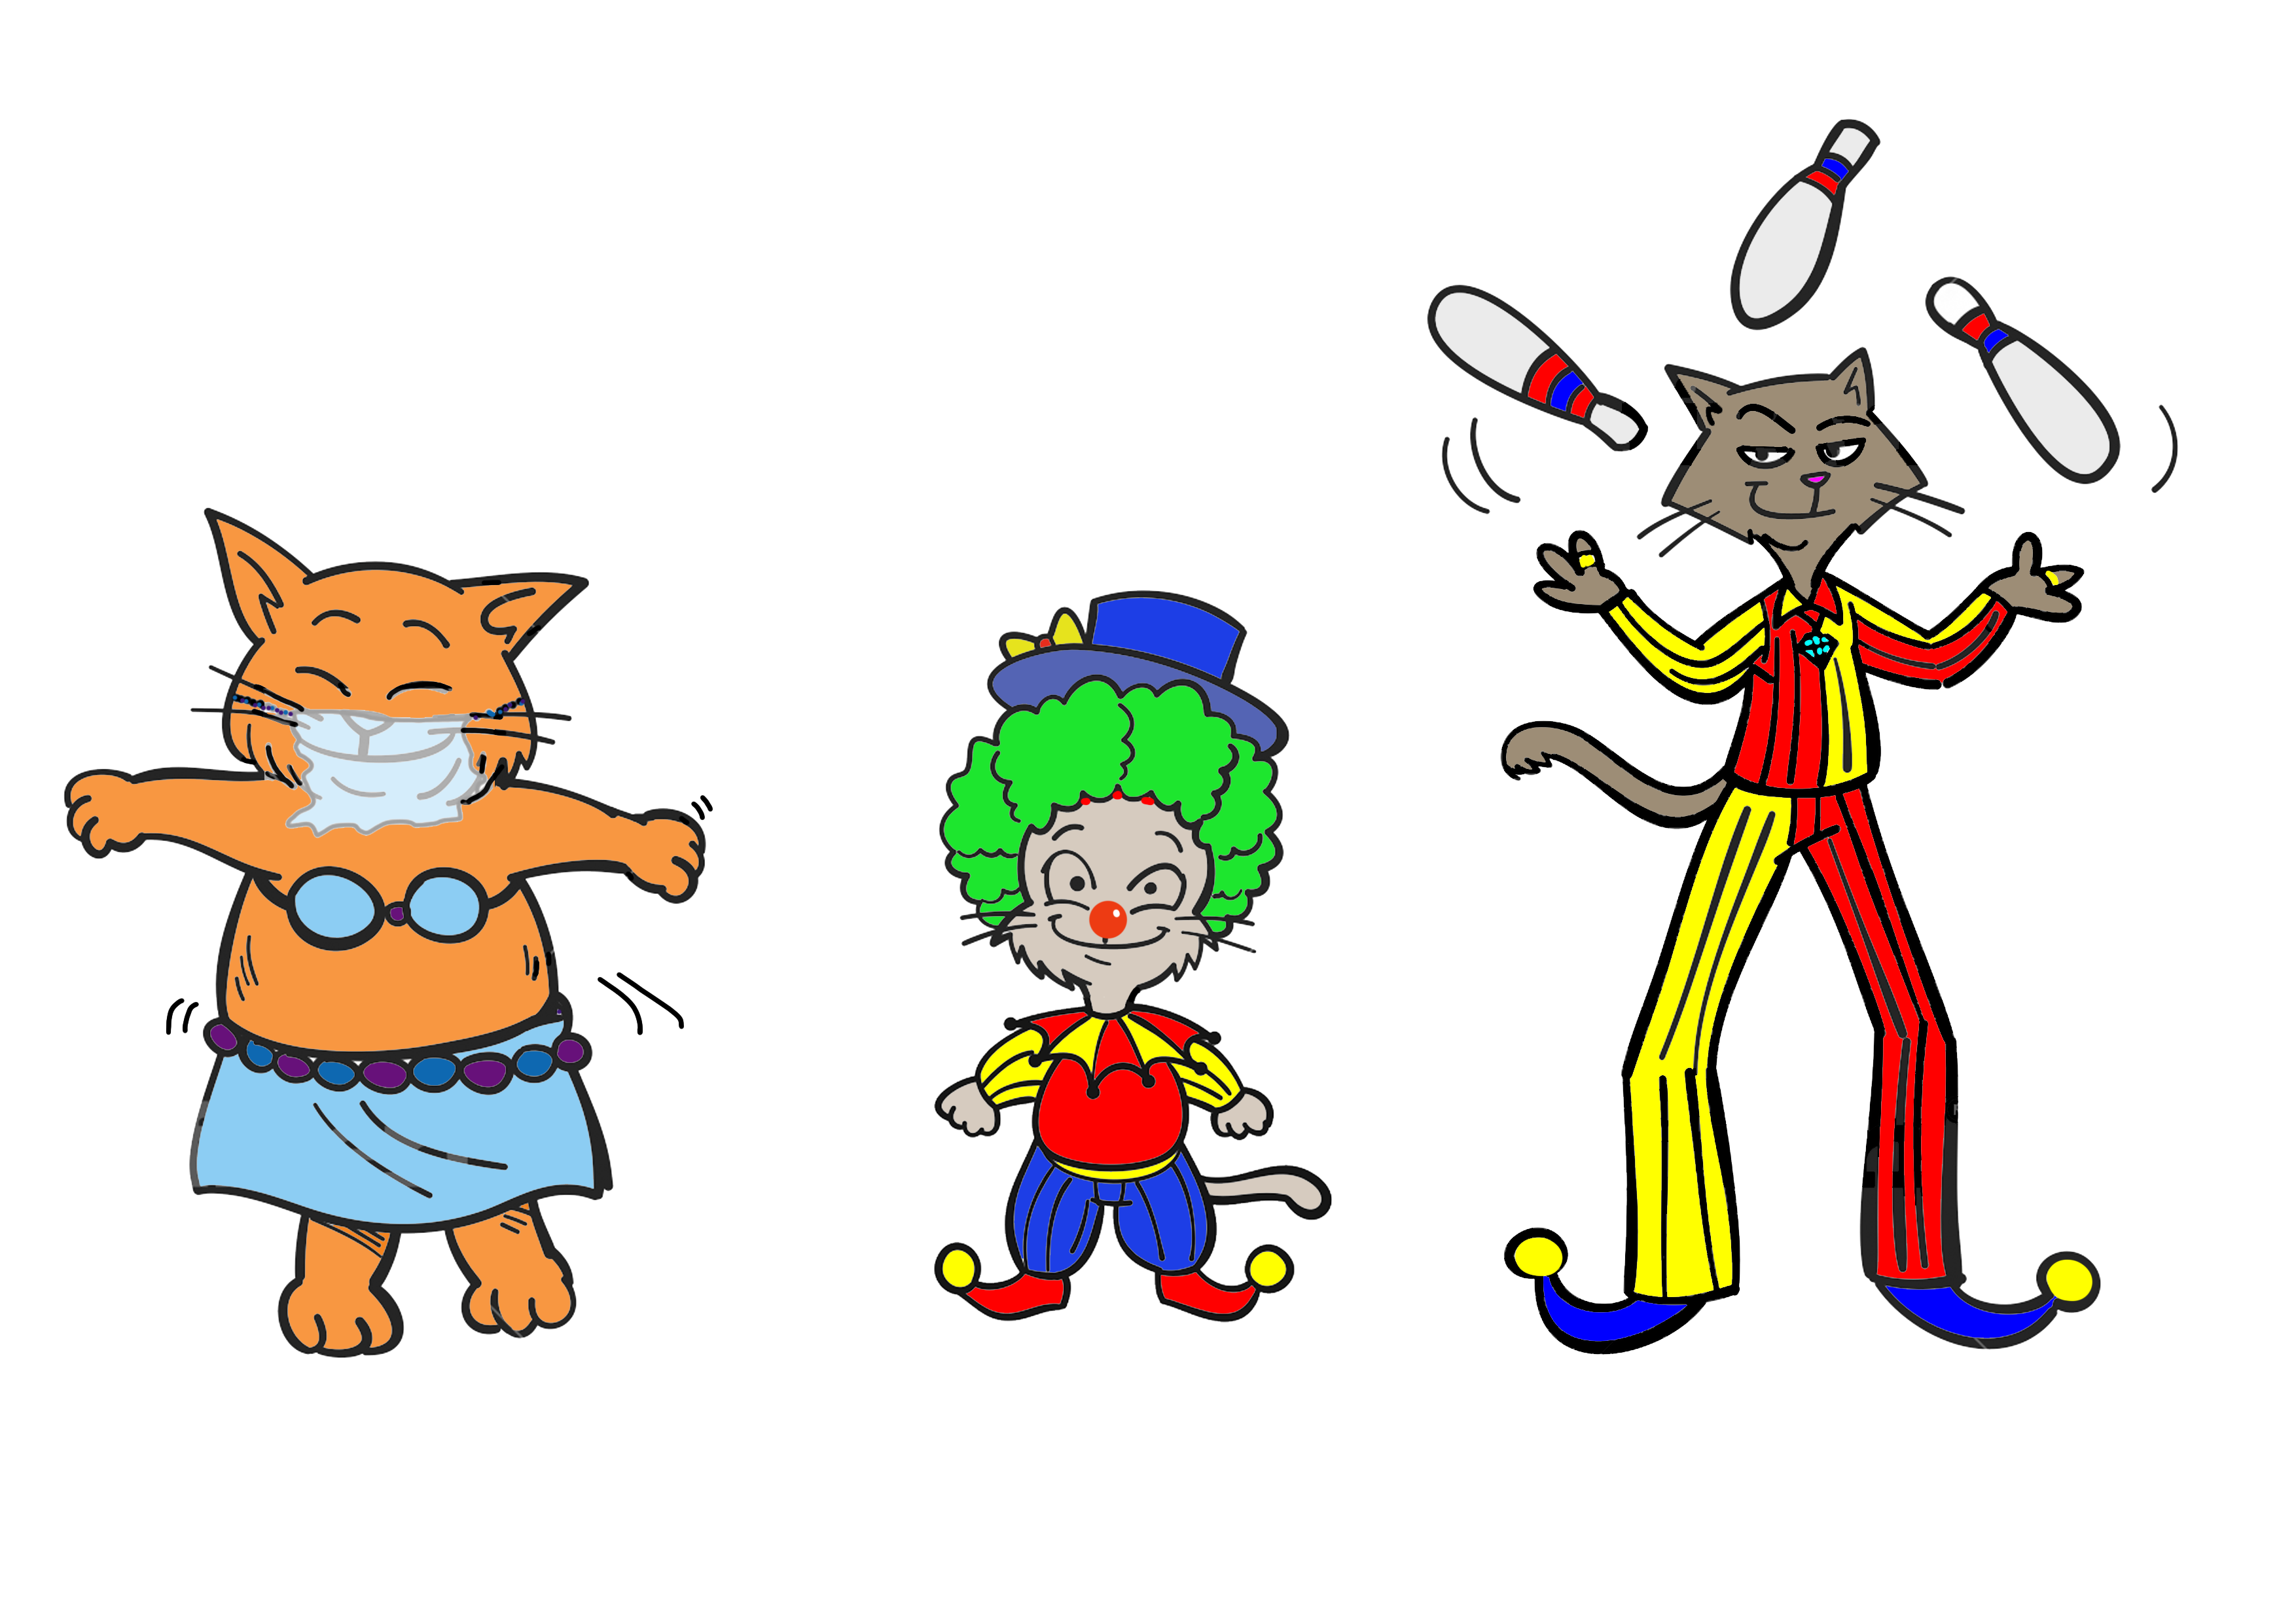 Do you recognise Banjo, Kiki and piero in their funny circus disguises? What on earth could they be up to now?